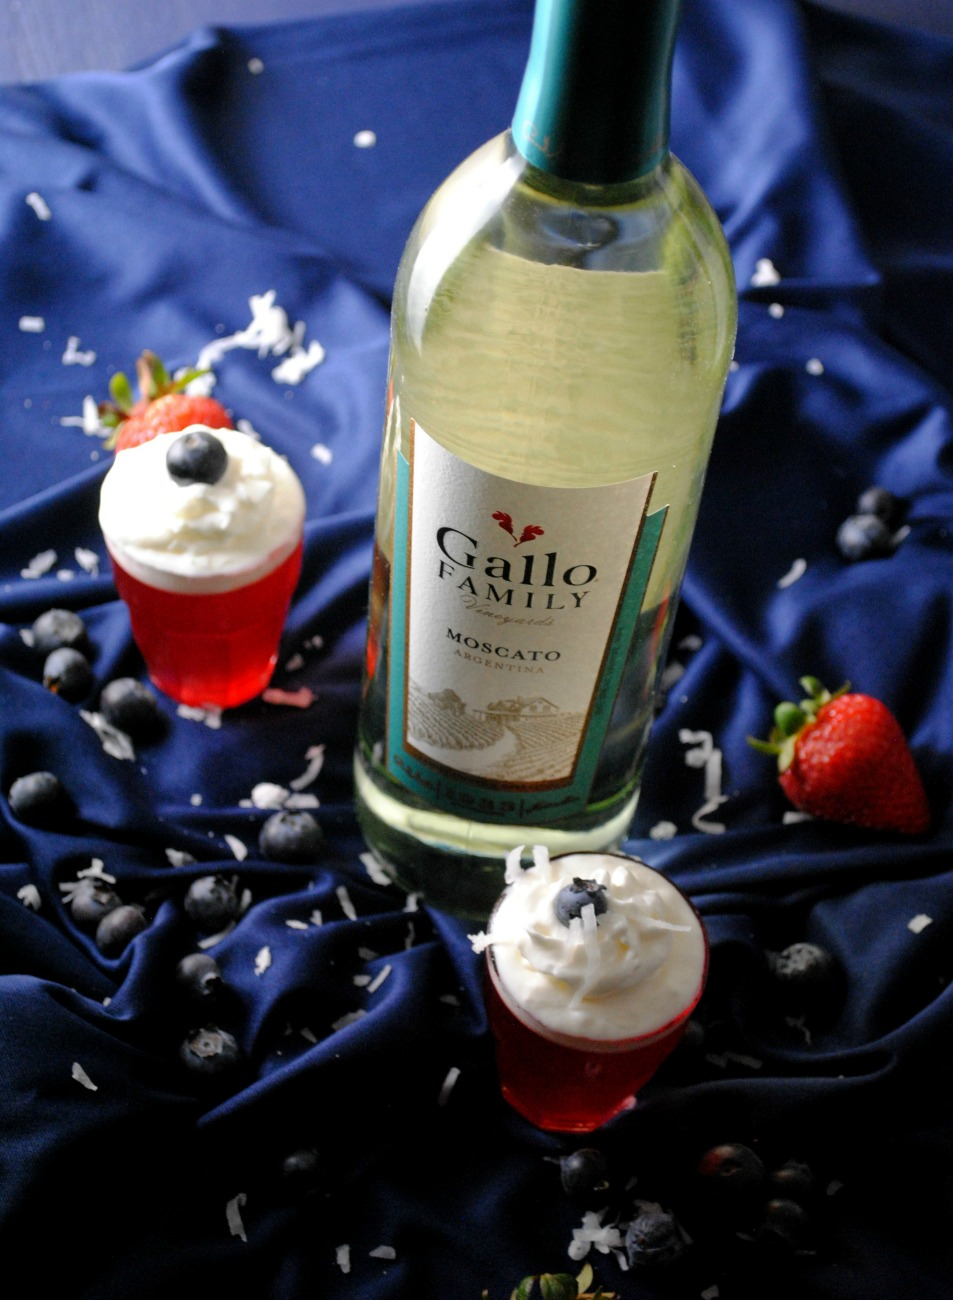 gallo family wine moscato VianneyRodriguez Patriotic Moscato Gelatin Shots sponsored moscato cocktails holiday recipes gallo family vineyards cocktails cocktail friday 2